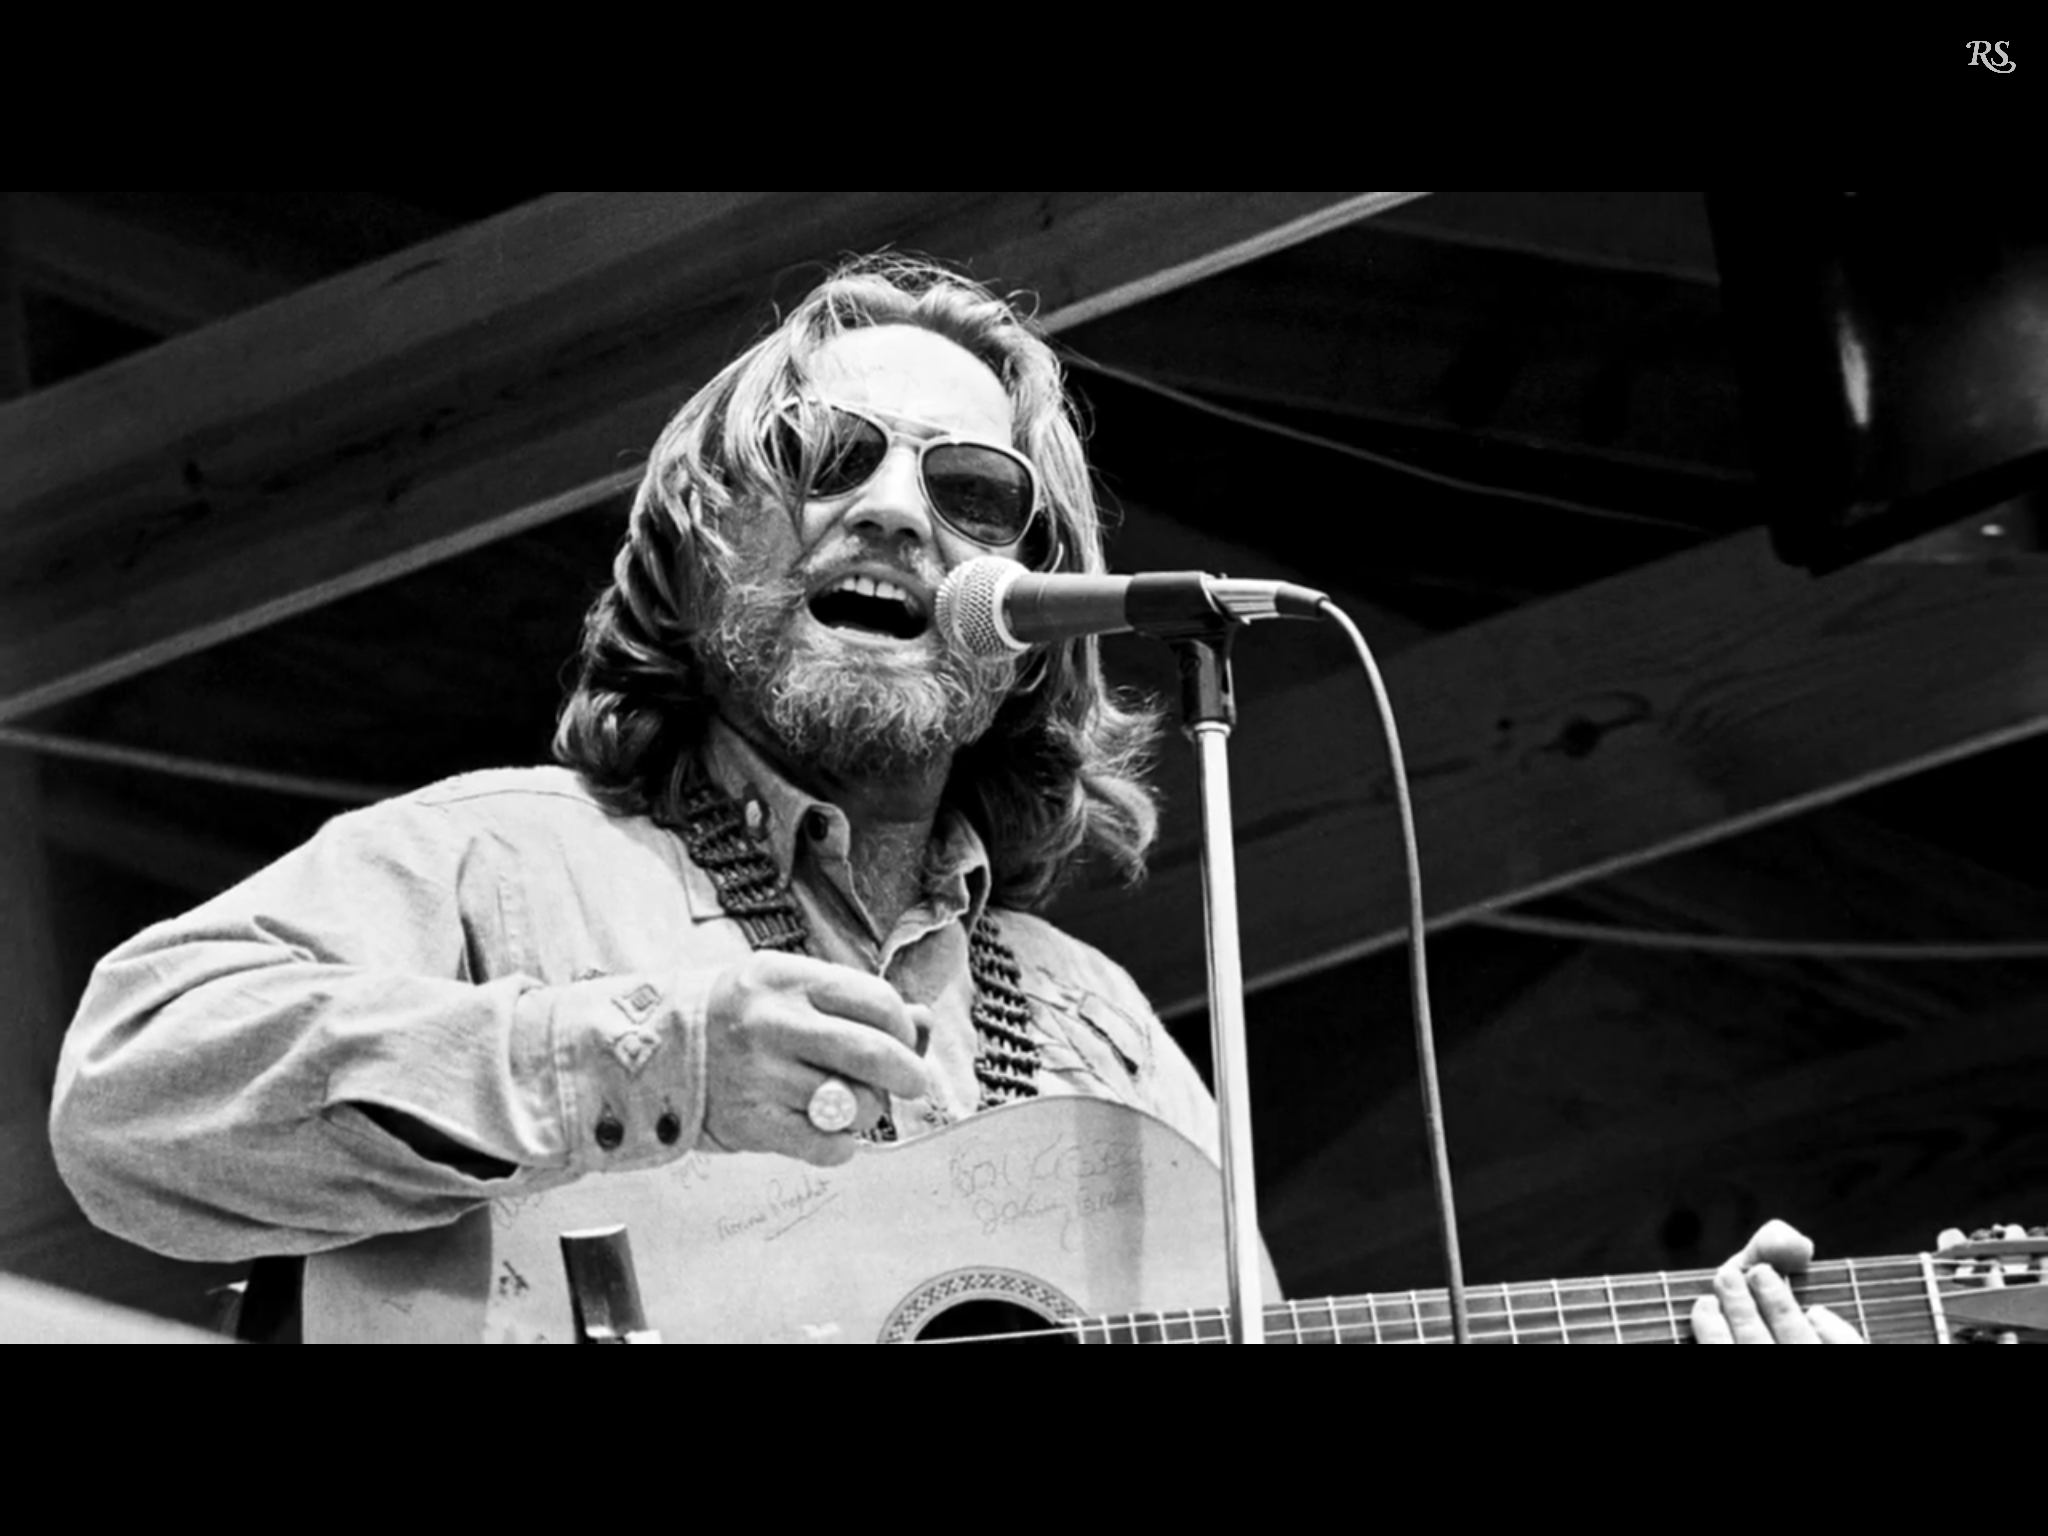 Willie Nelson with his guitar trigger